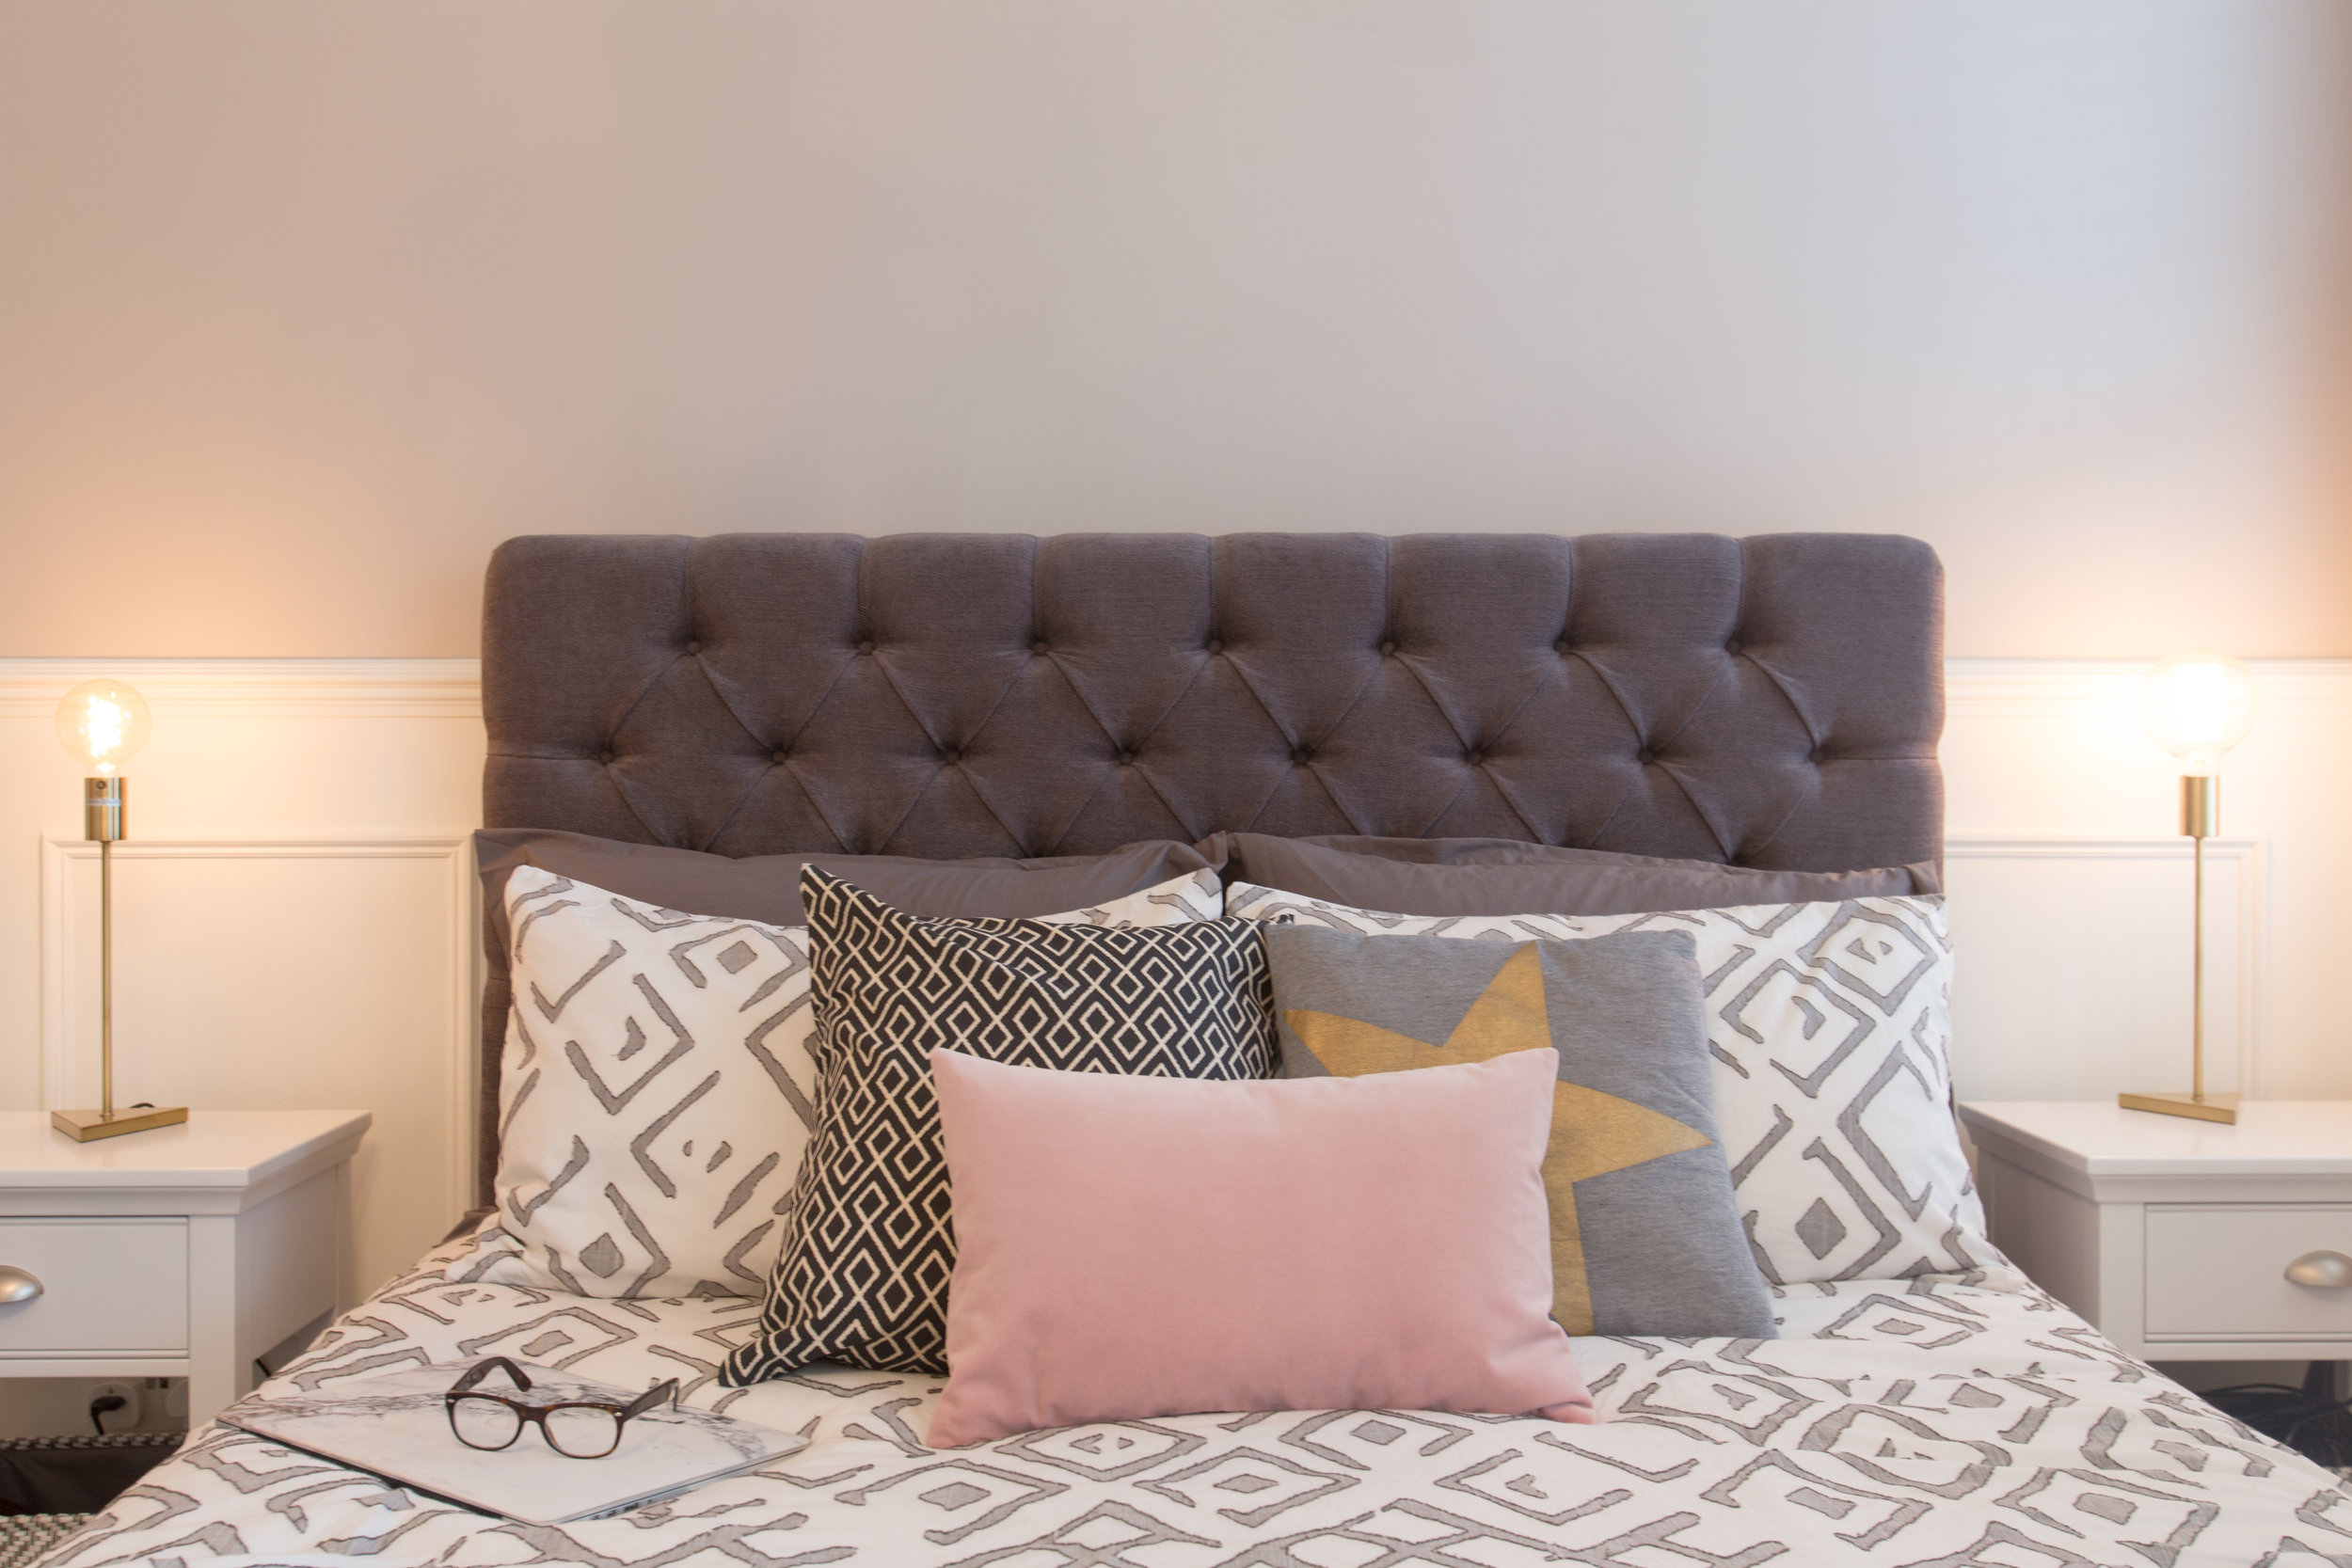 Geo printed bedding and cushions.